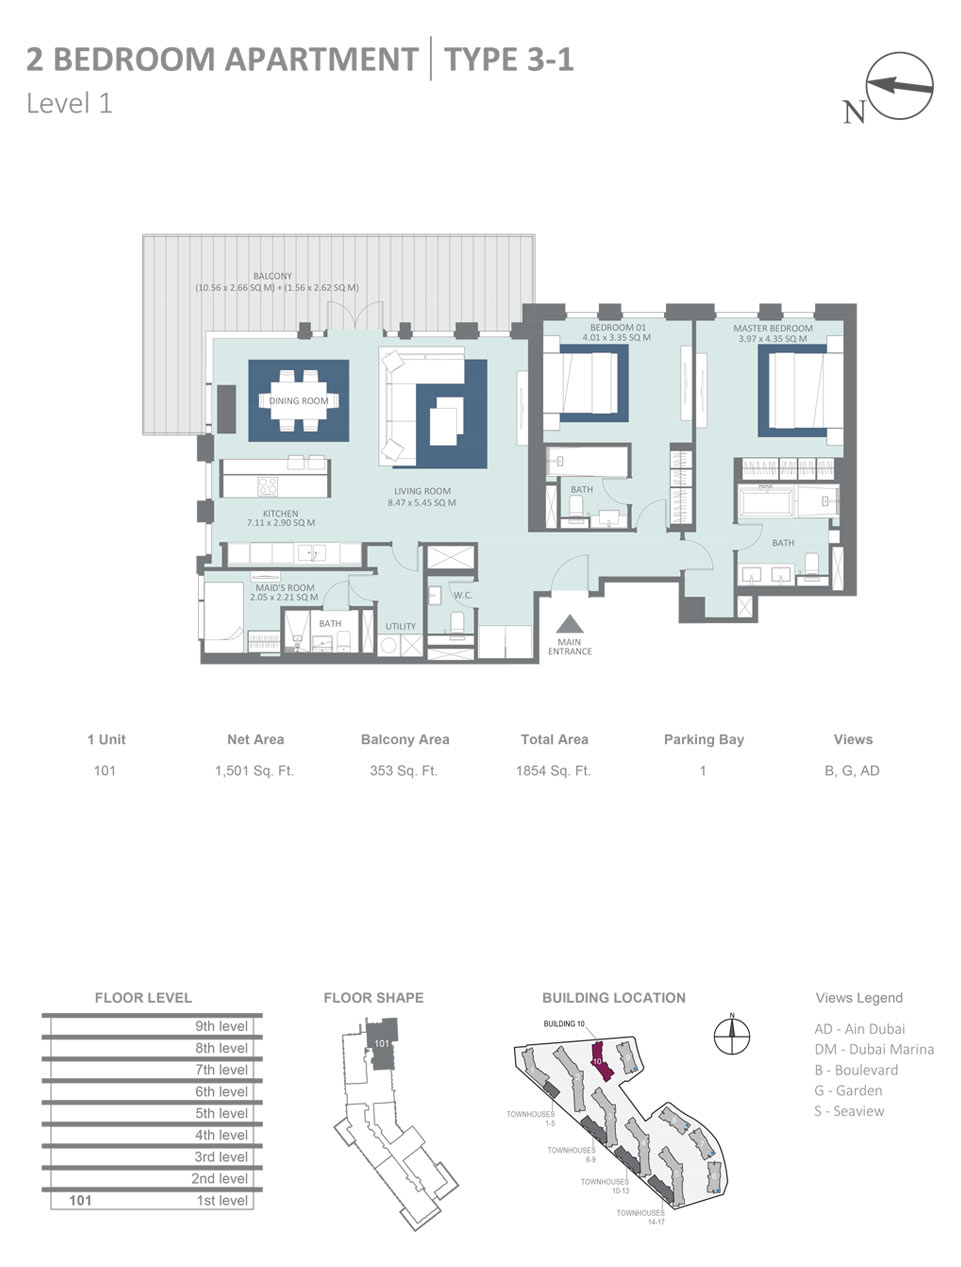 2 Bedroom  Type 3-1 Level 1 Size 1854 sqft